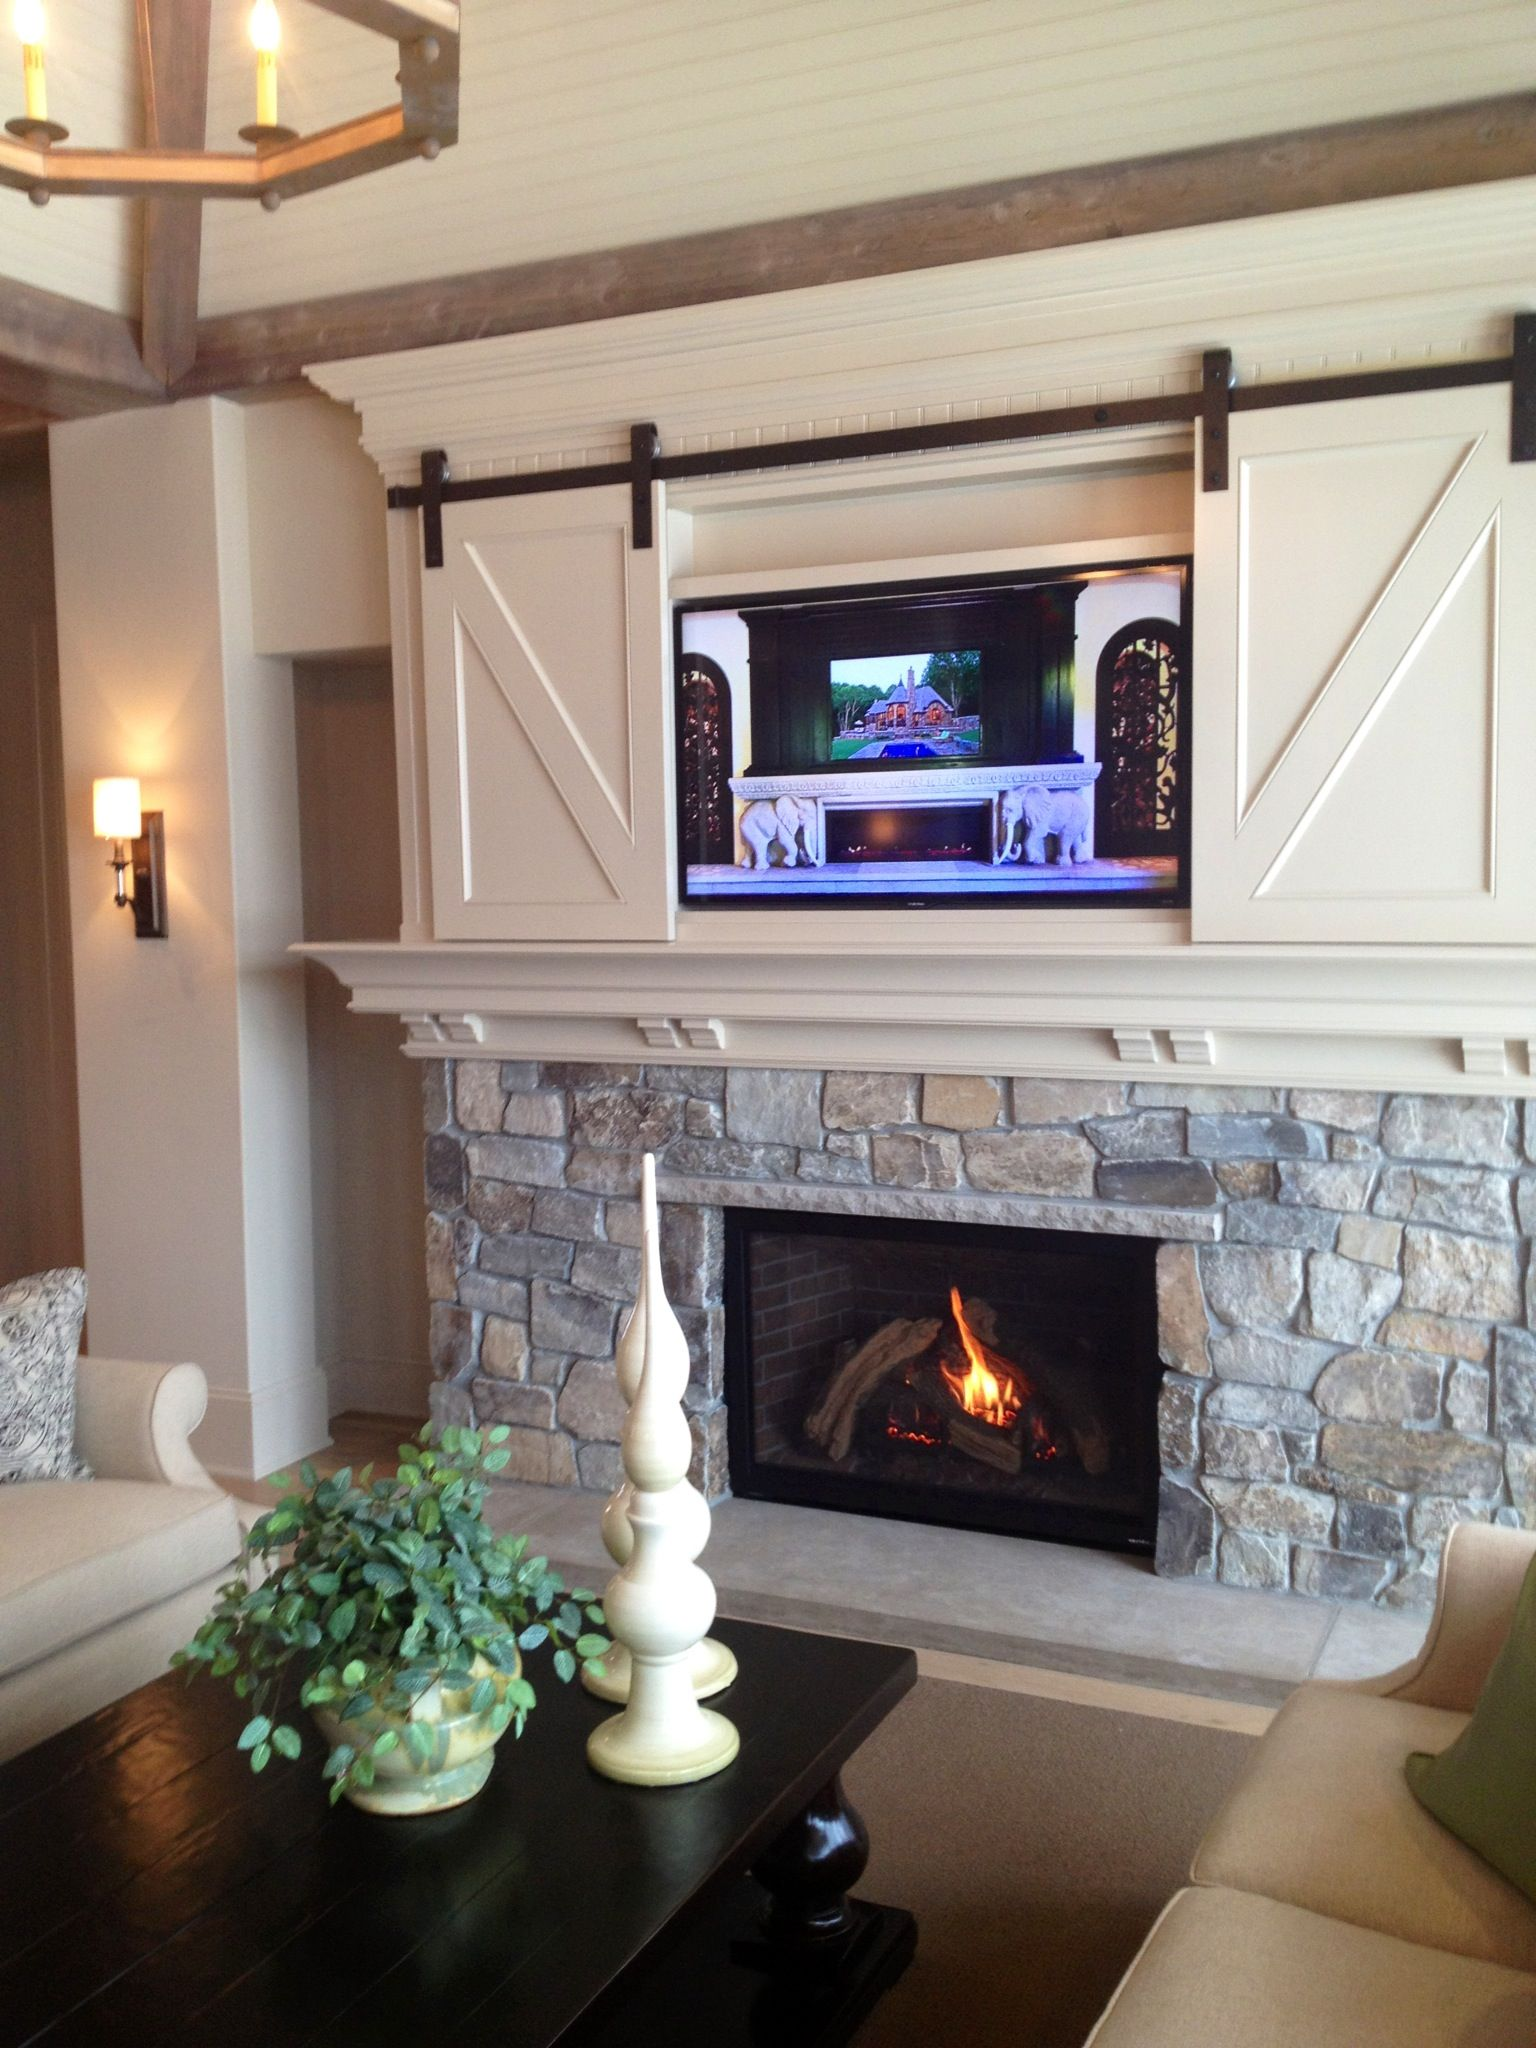 living room ideas with tv and fireplace l shaped sofa 50 ways to use interior sliding barn doors in your home our housey door for the super cute would be cool put a picture over